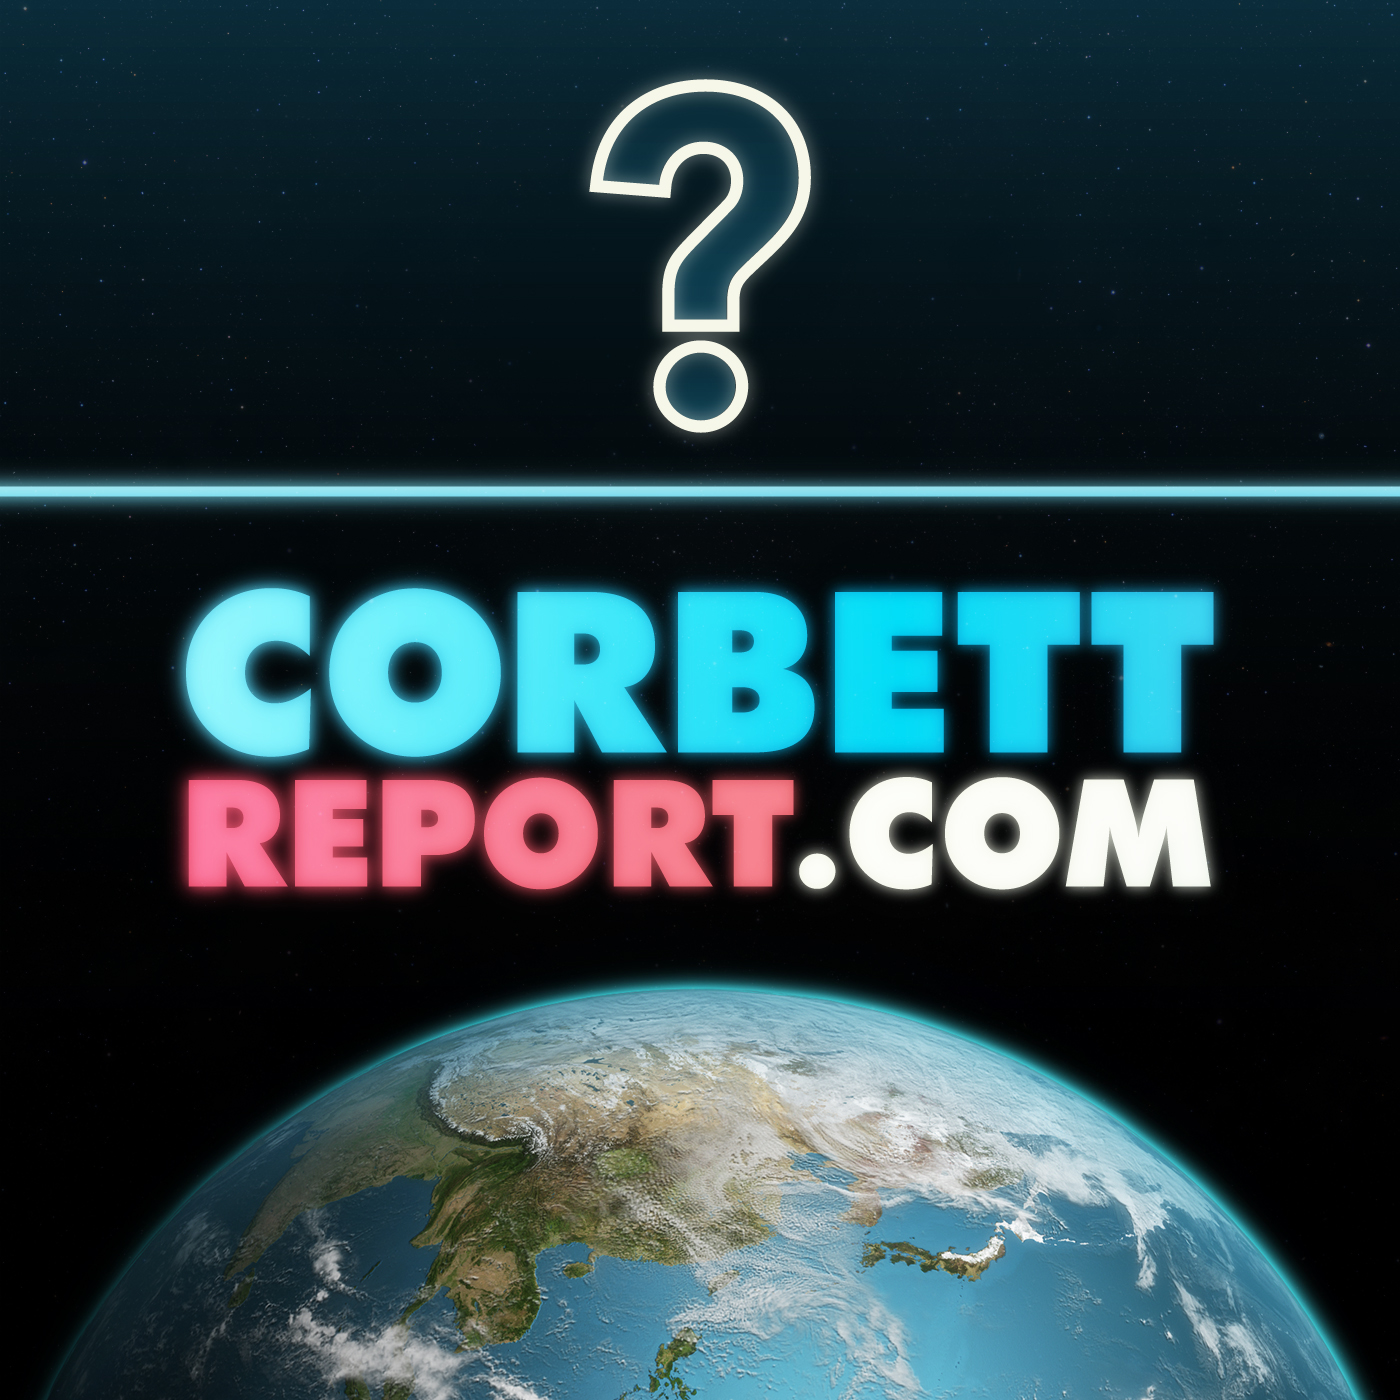 CorbettReport.com - Questions For Corbett